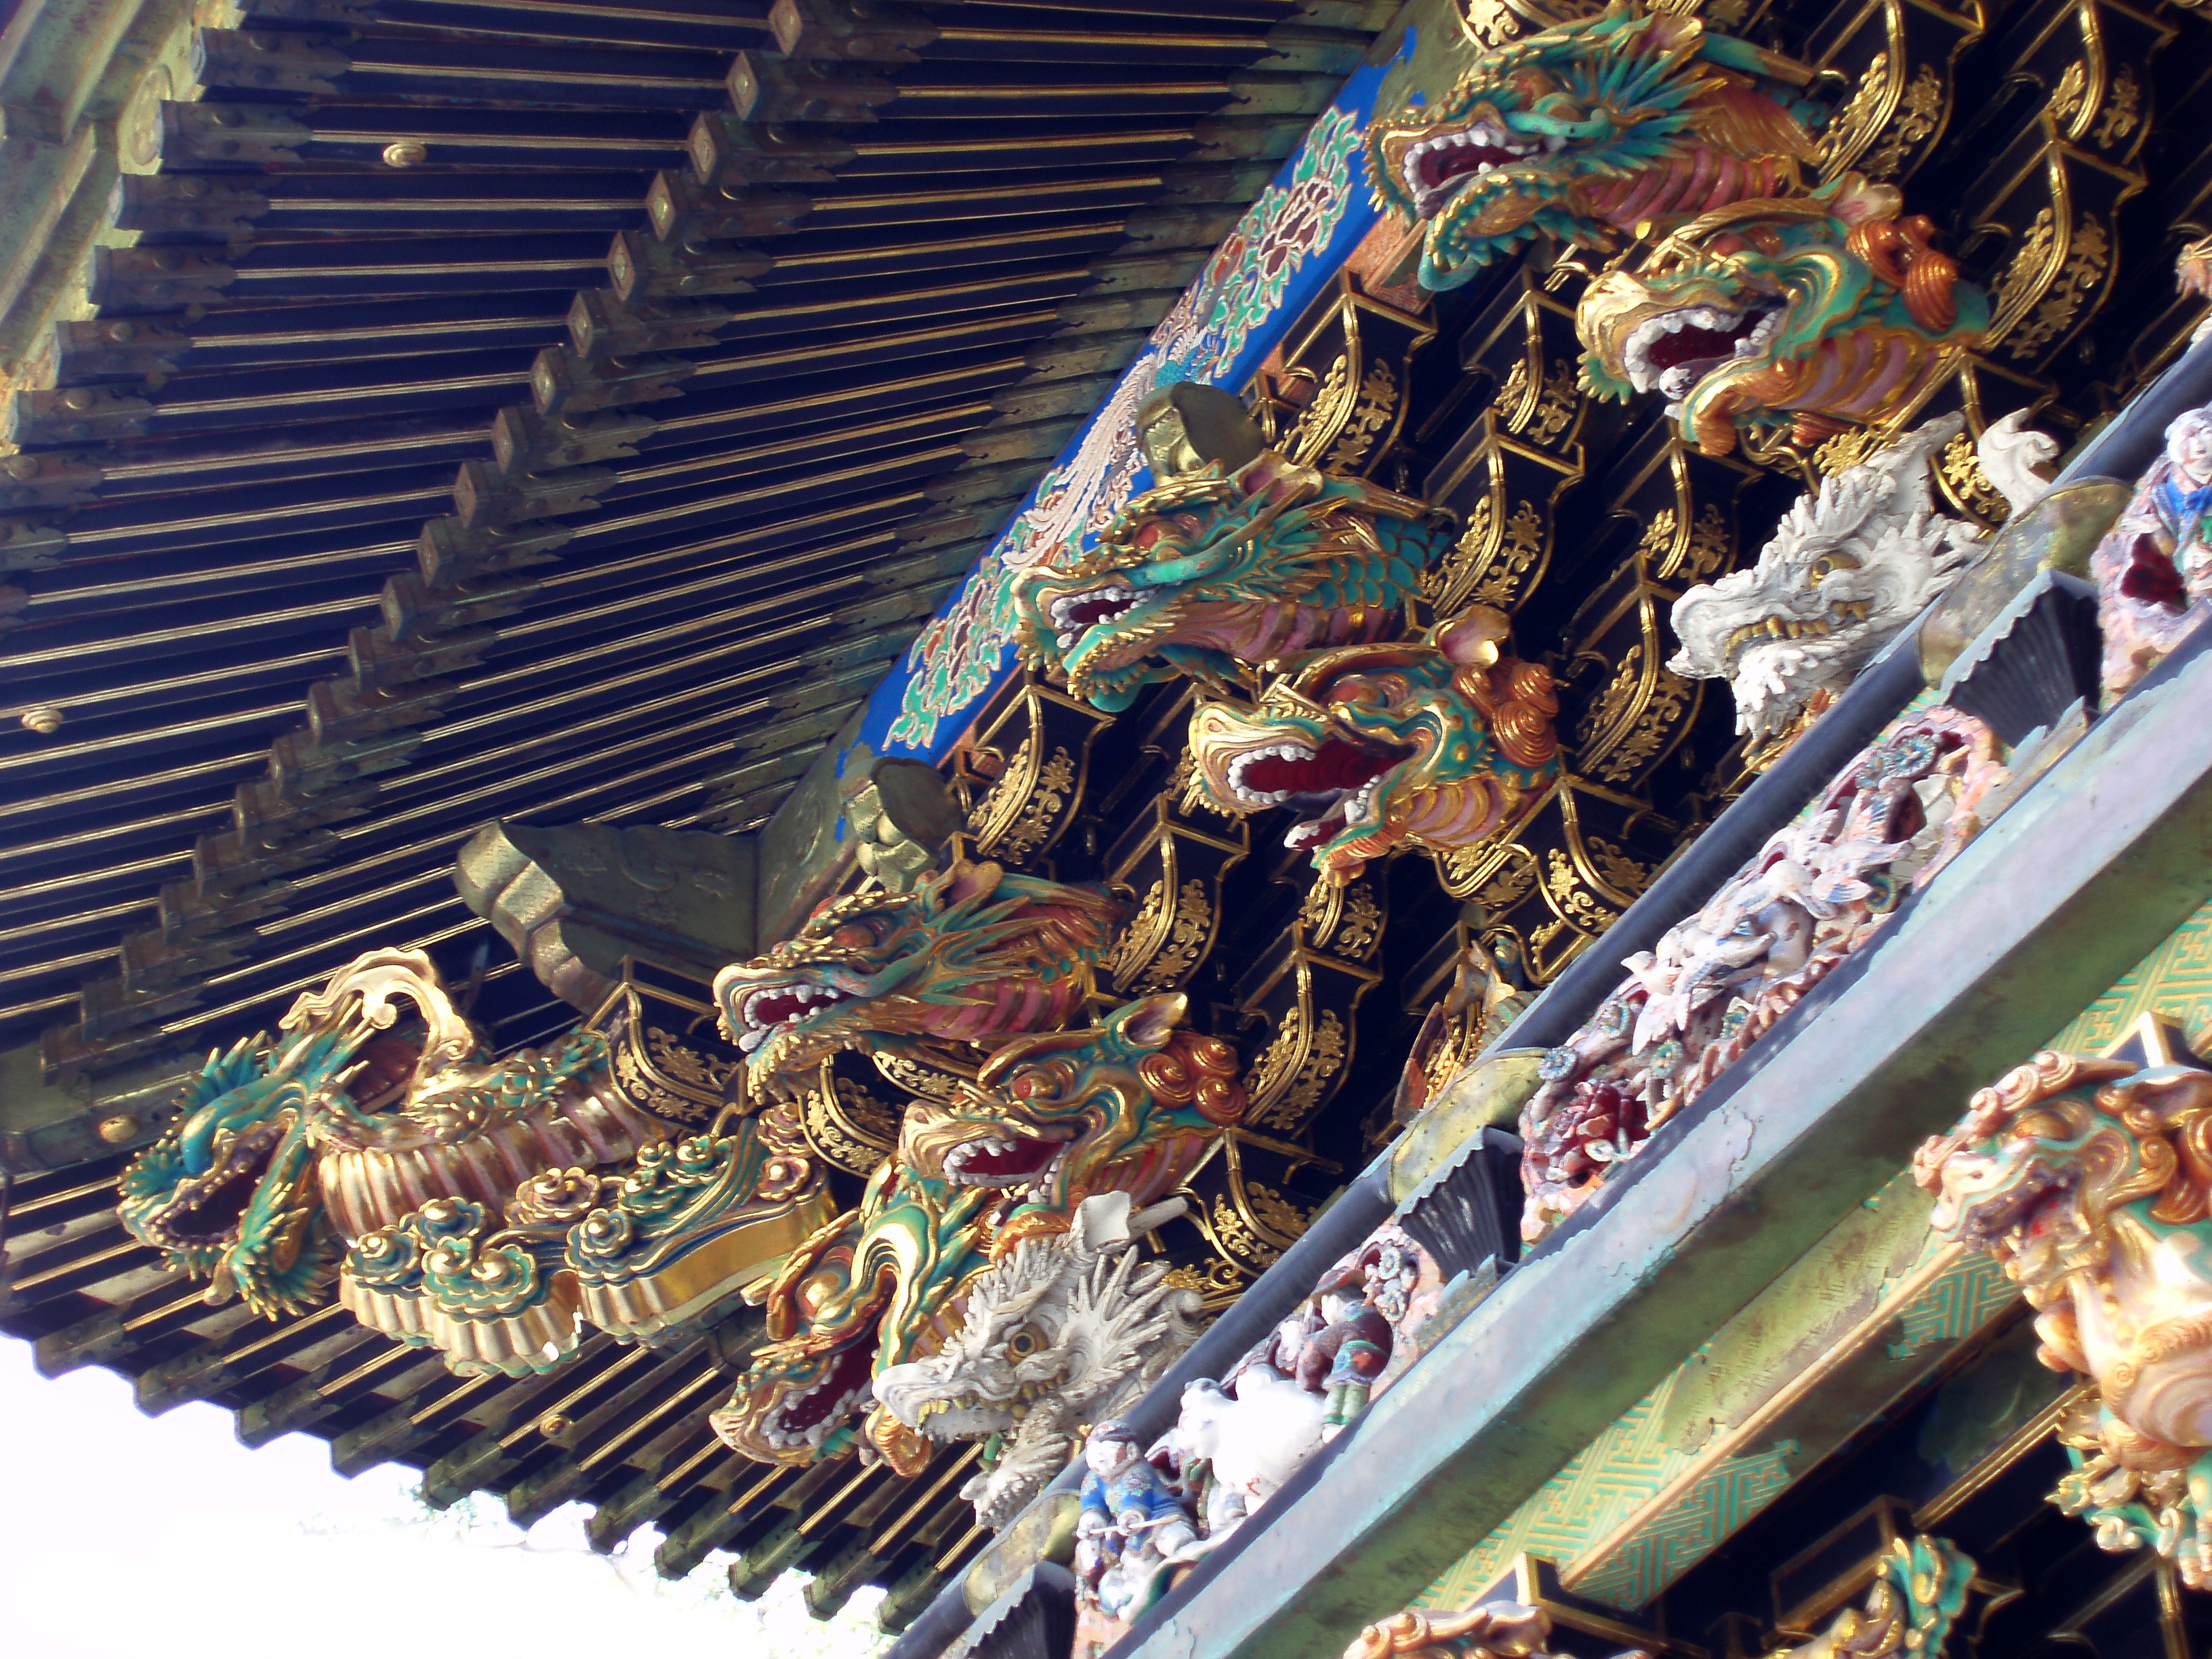 beautiful ornate gold painted carvings high on the wall of a temple, nikko japan